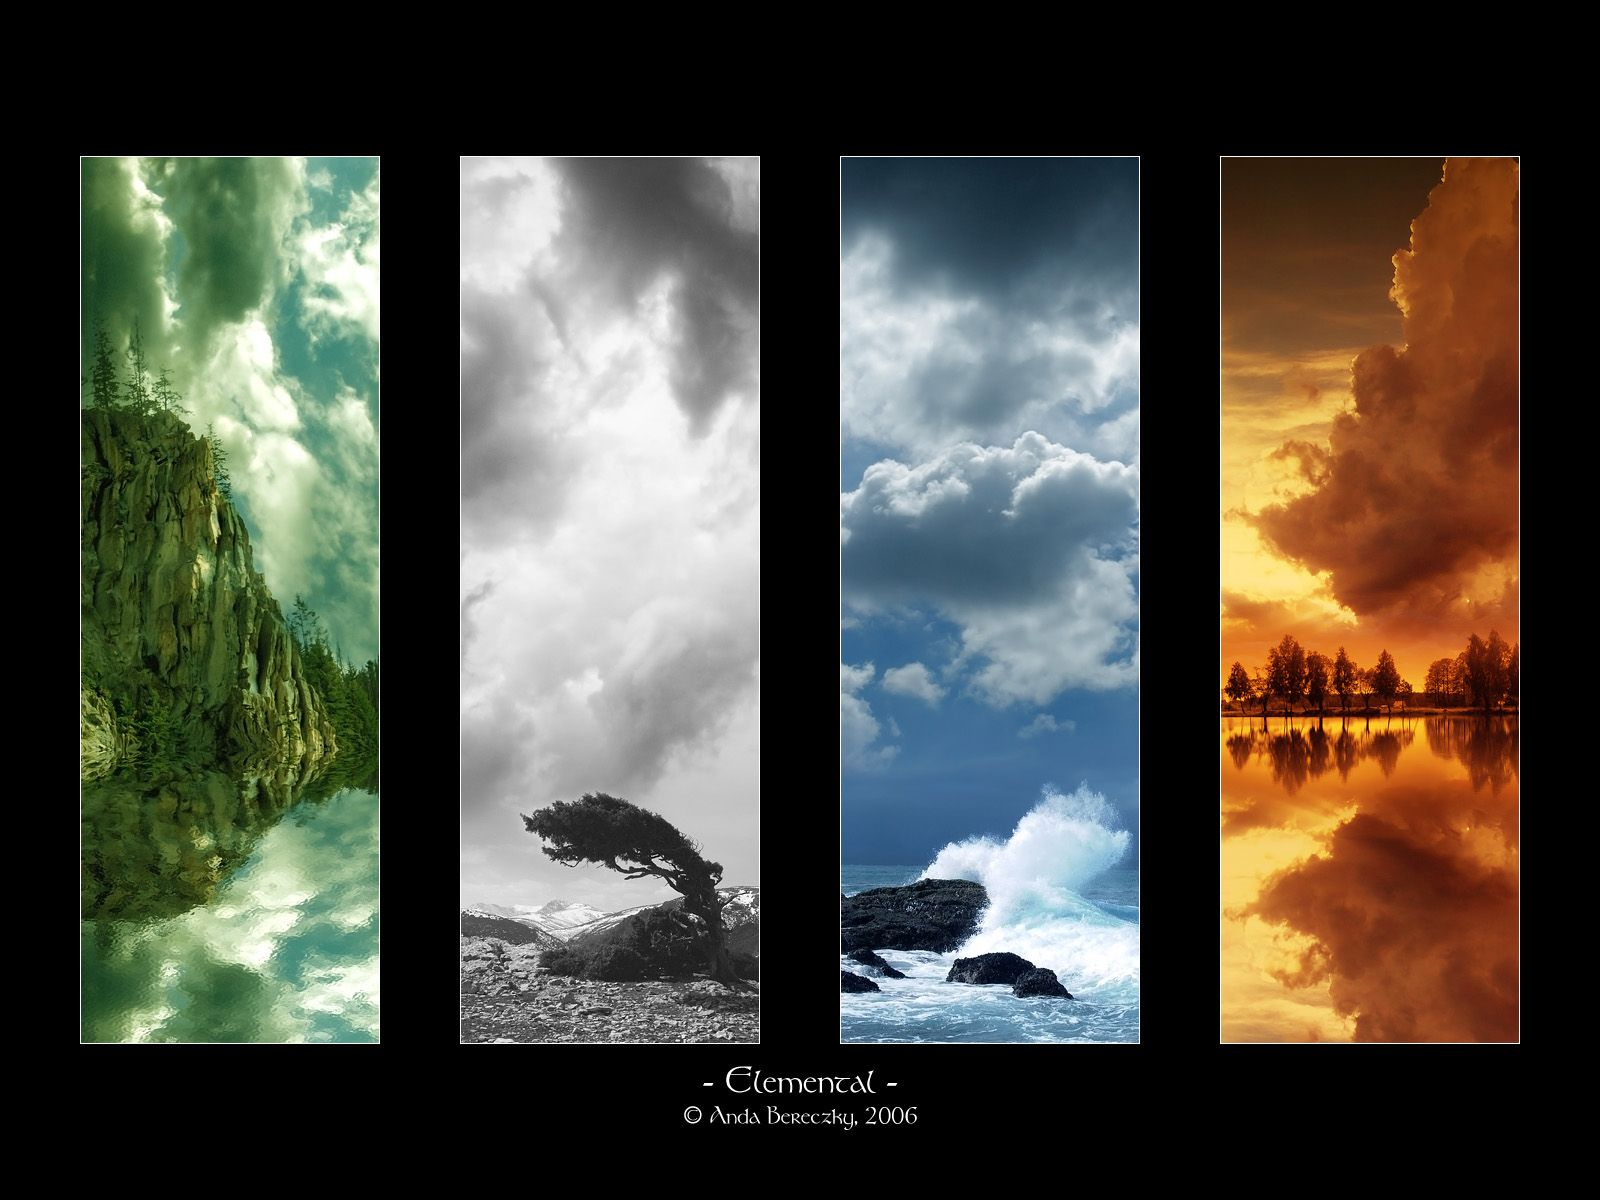 The Four Elements - * Earth * Air * Fire * Water *